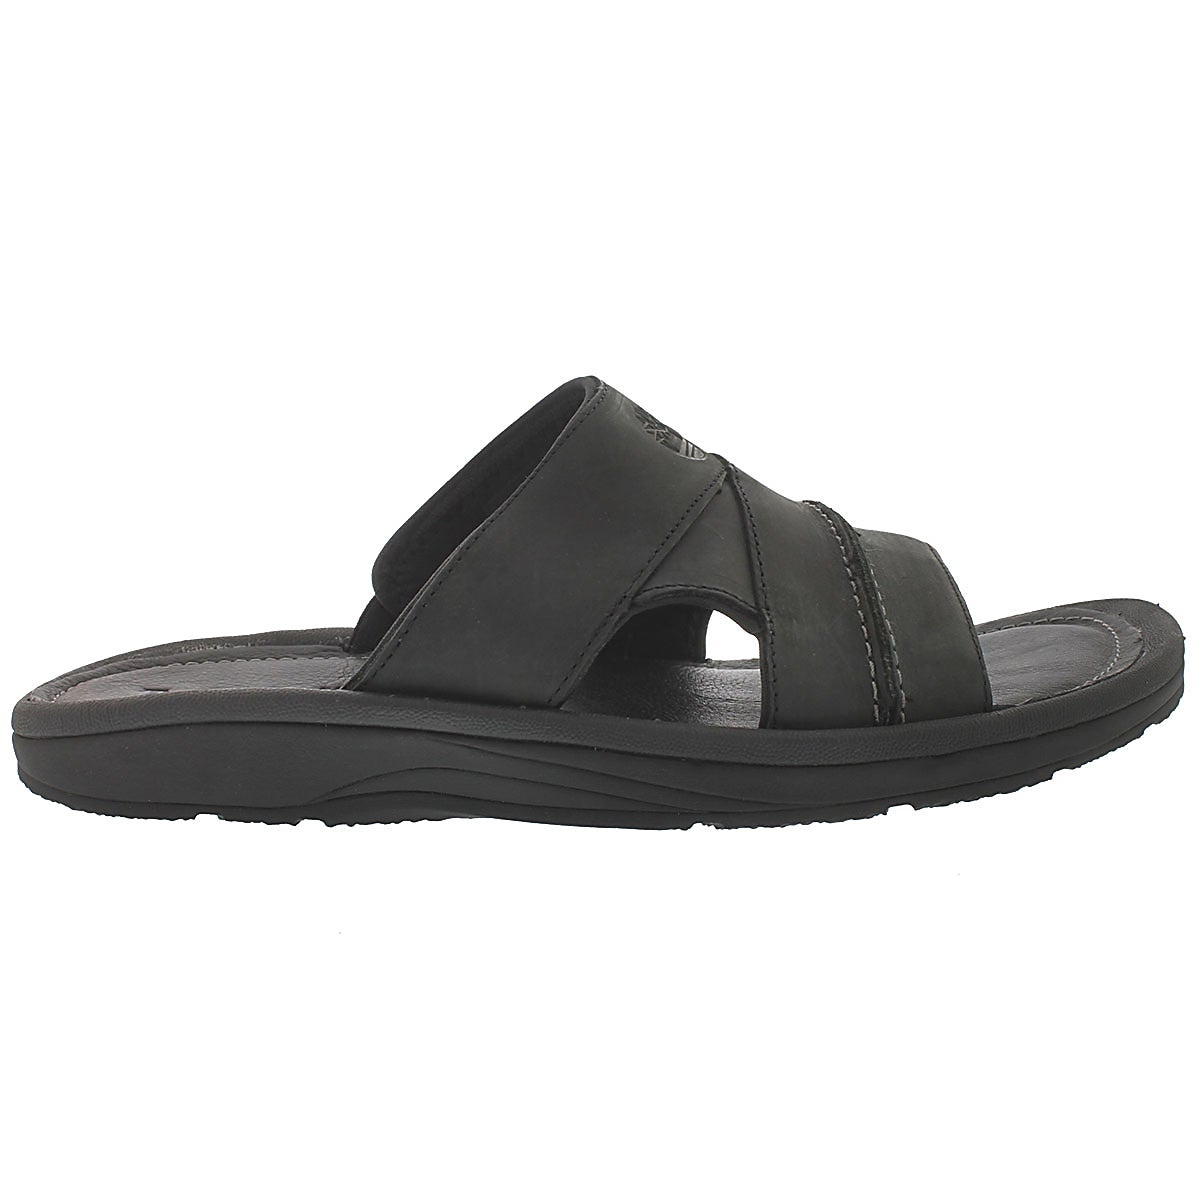 Mns Earthkeepers blk oiled slide sandal